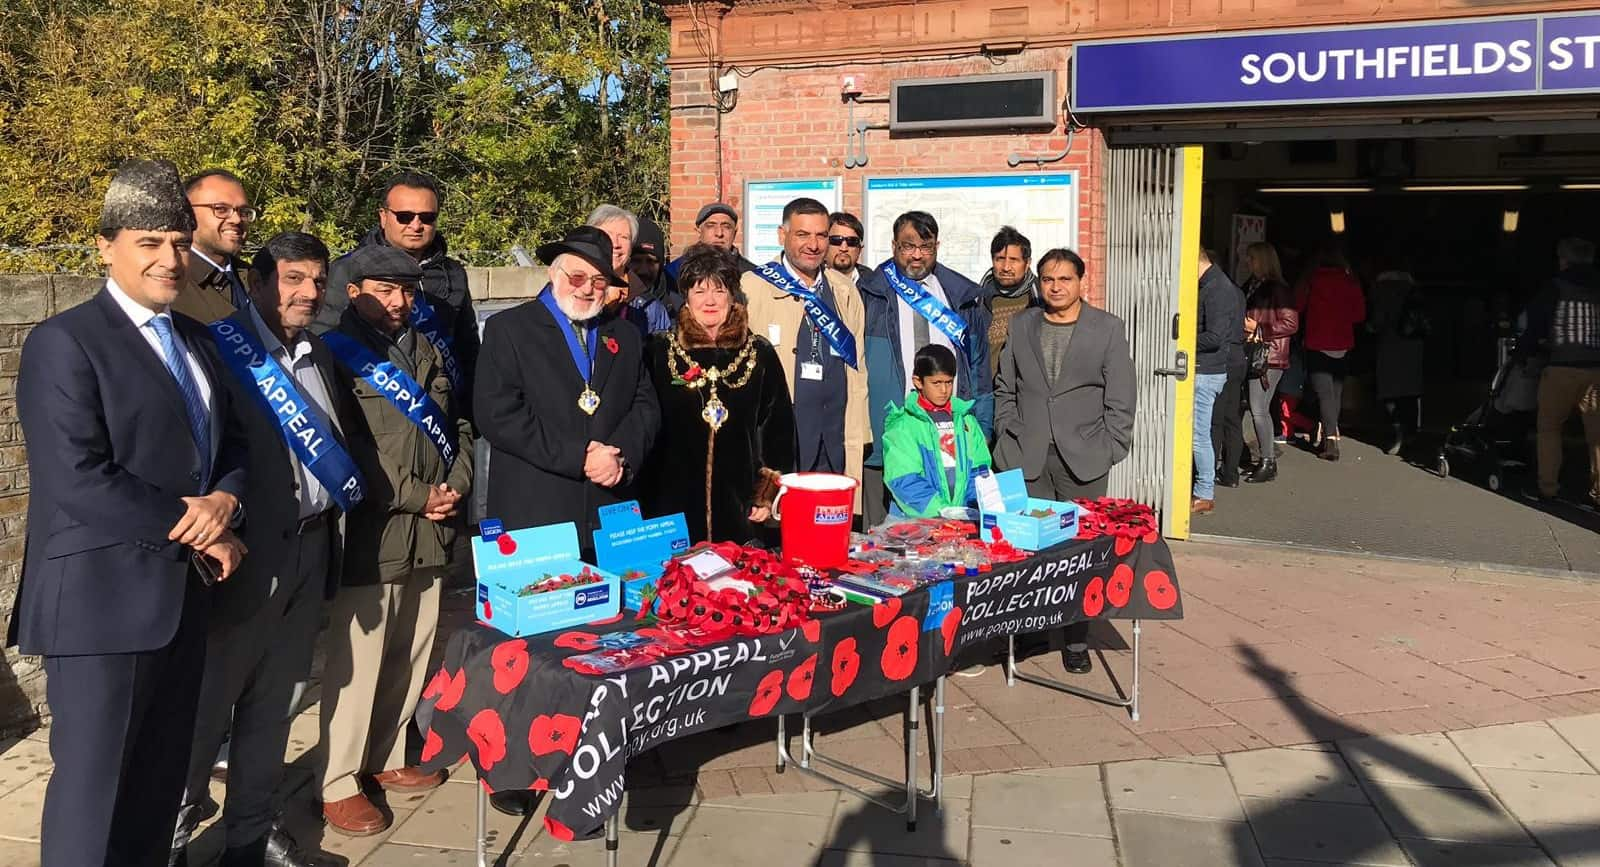 Ahmadiyya Muslim Elders launch the £500,000 Poppy Appeal campaign at Southfields